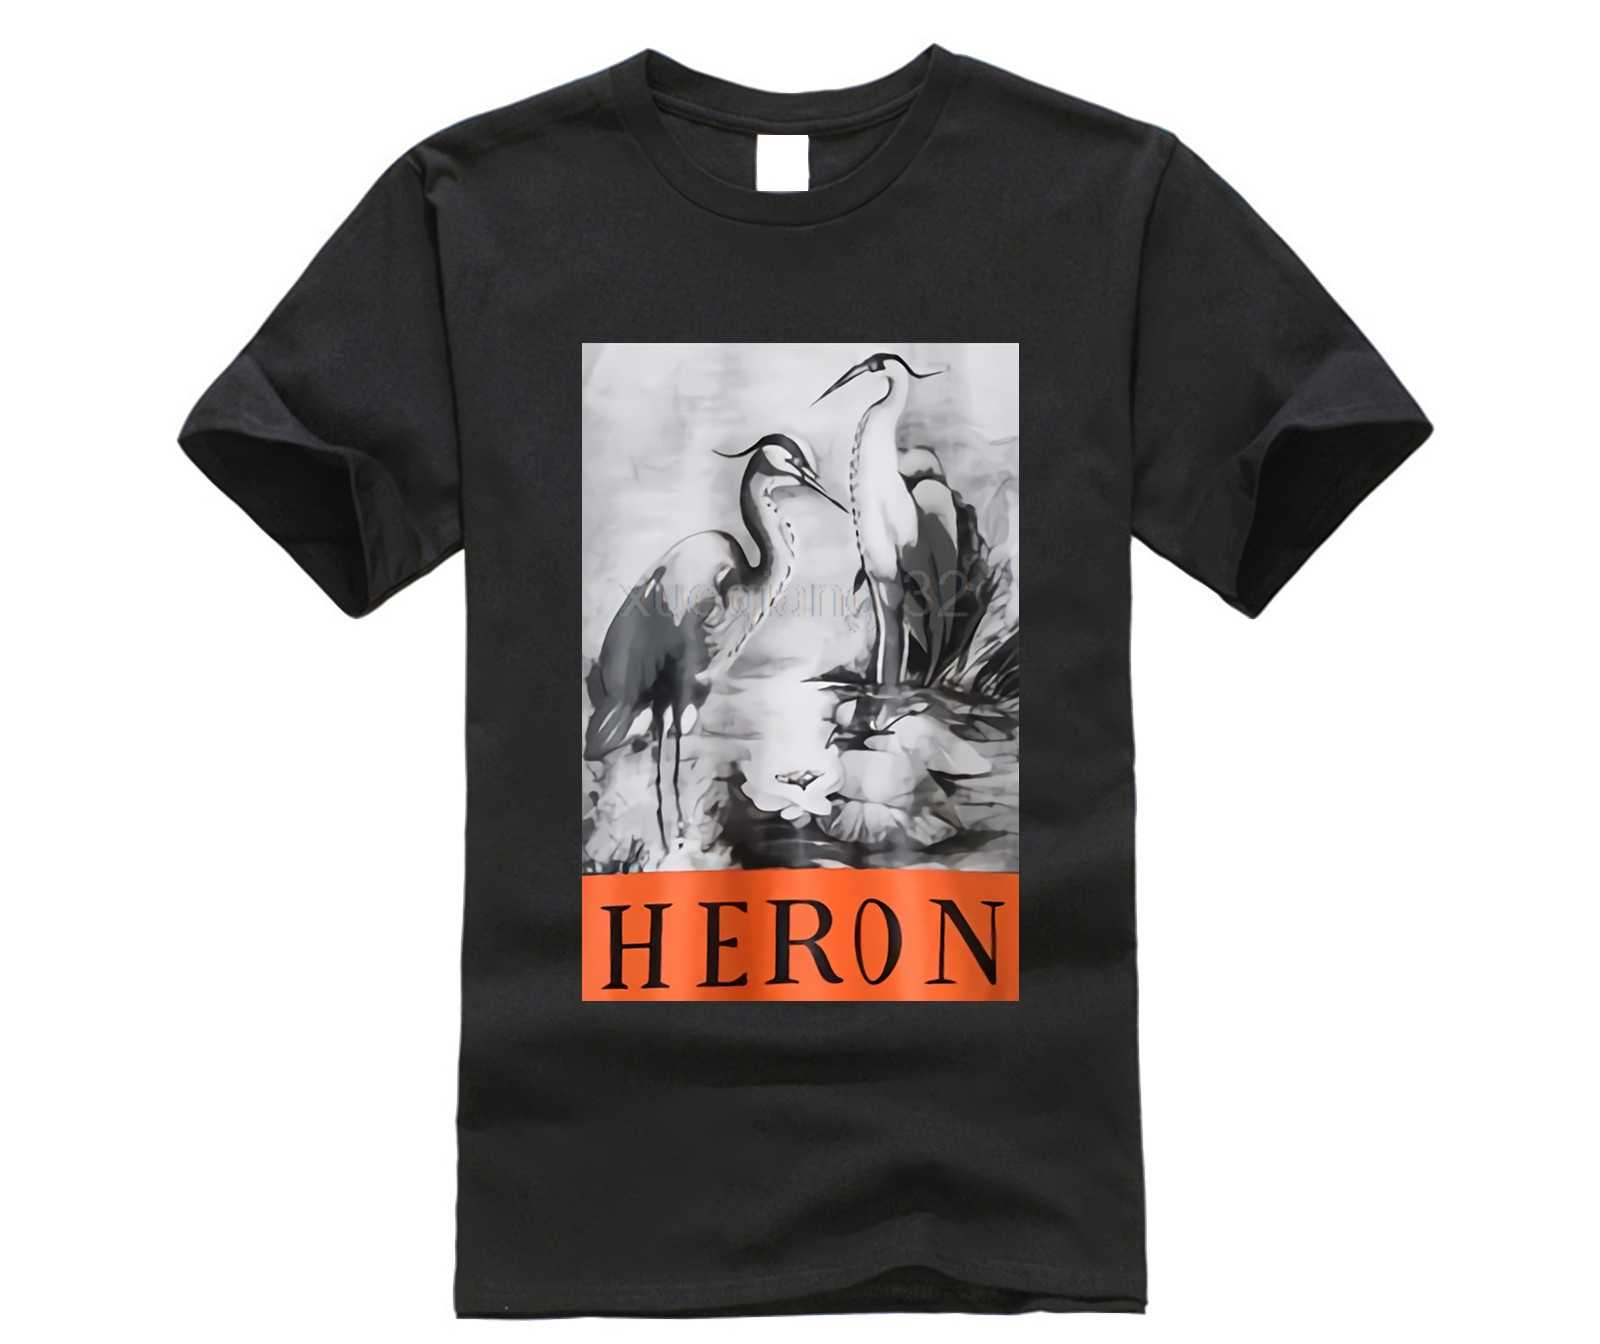 Heron-Preston-T-shirt-1-1-high-quality-Men-Women-2018WF-New-Arrived-Top-Tees-Heron (1)